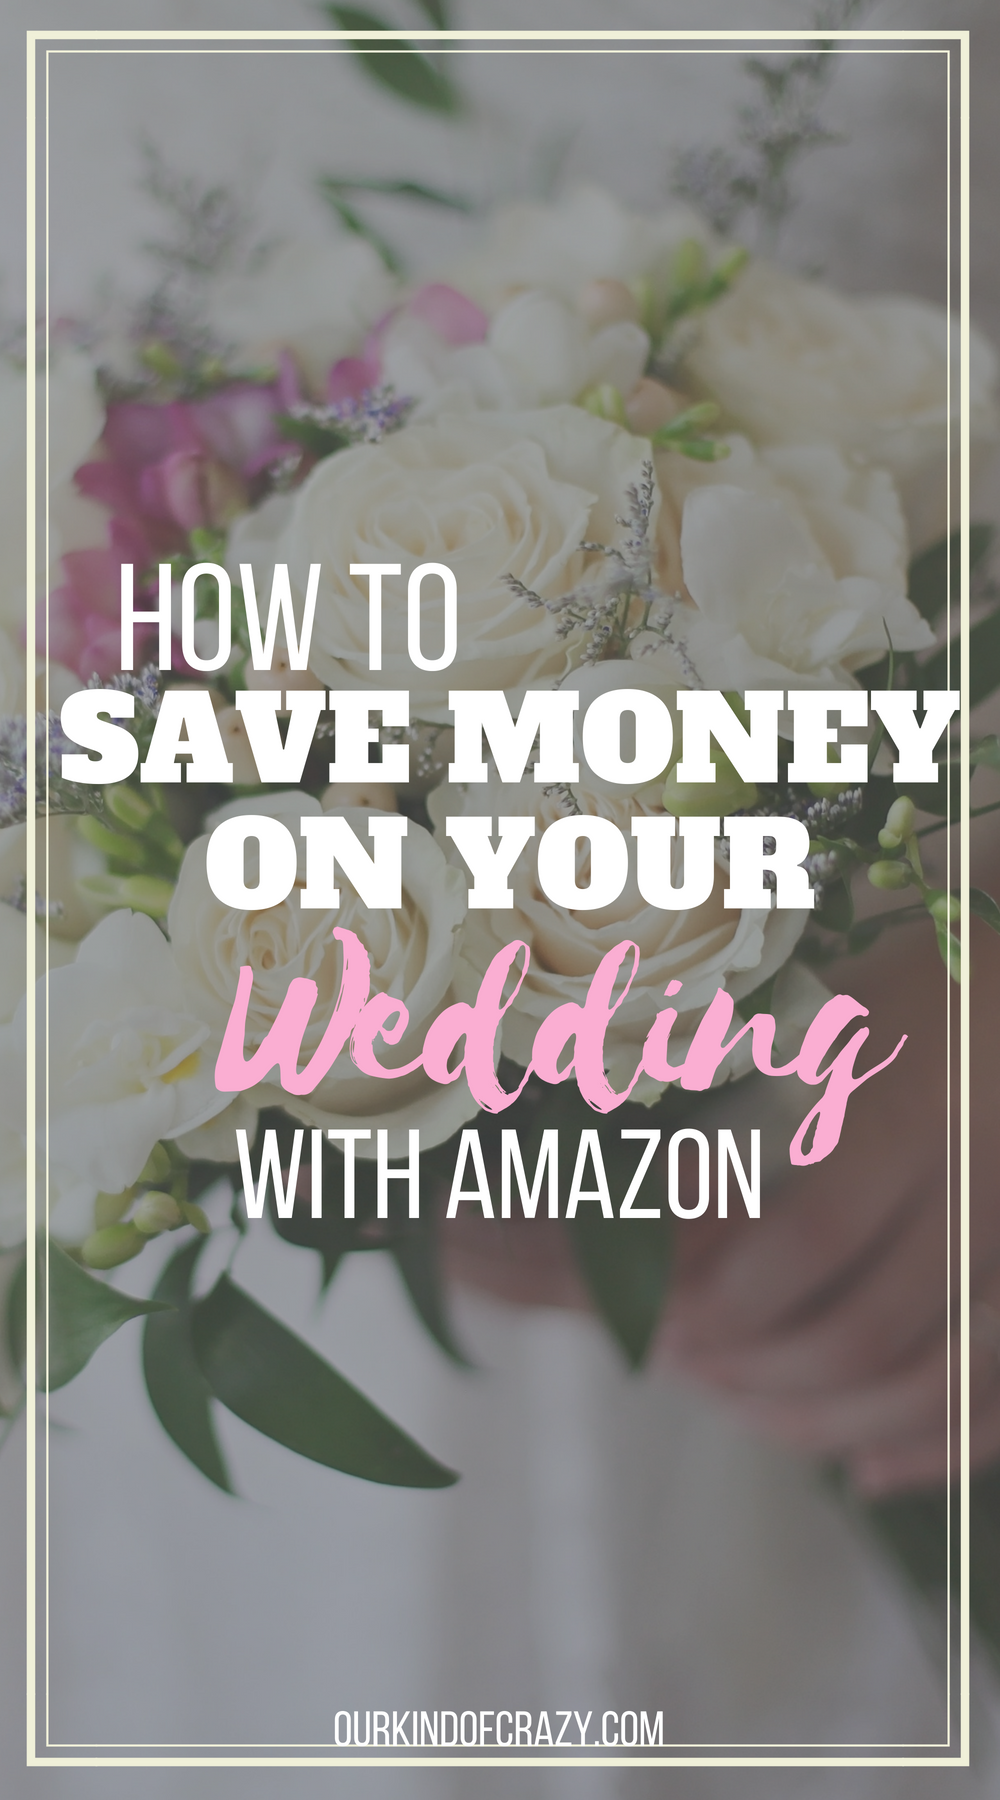 How to Save Money on Your Wedding with Amazon